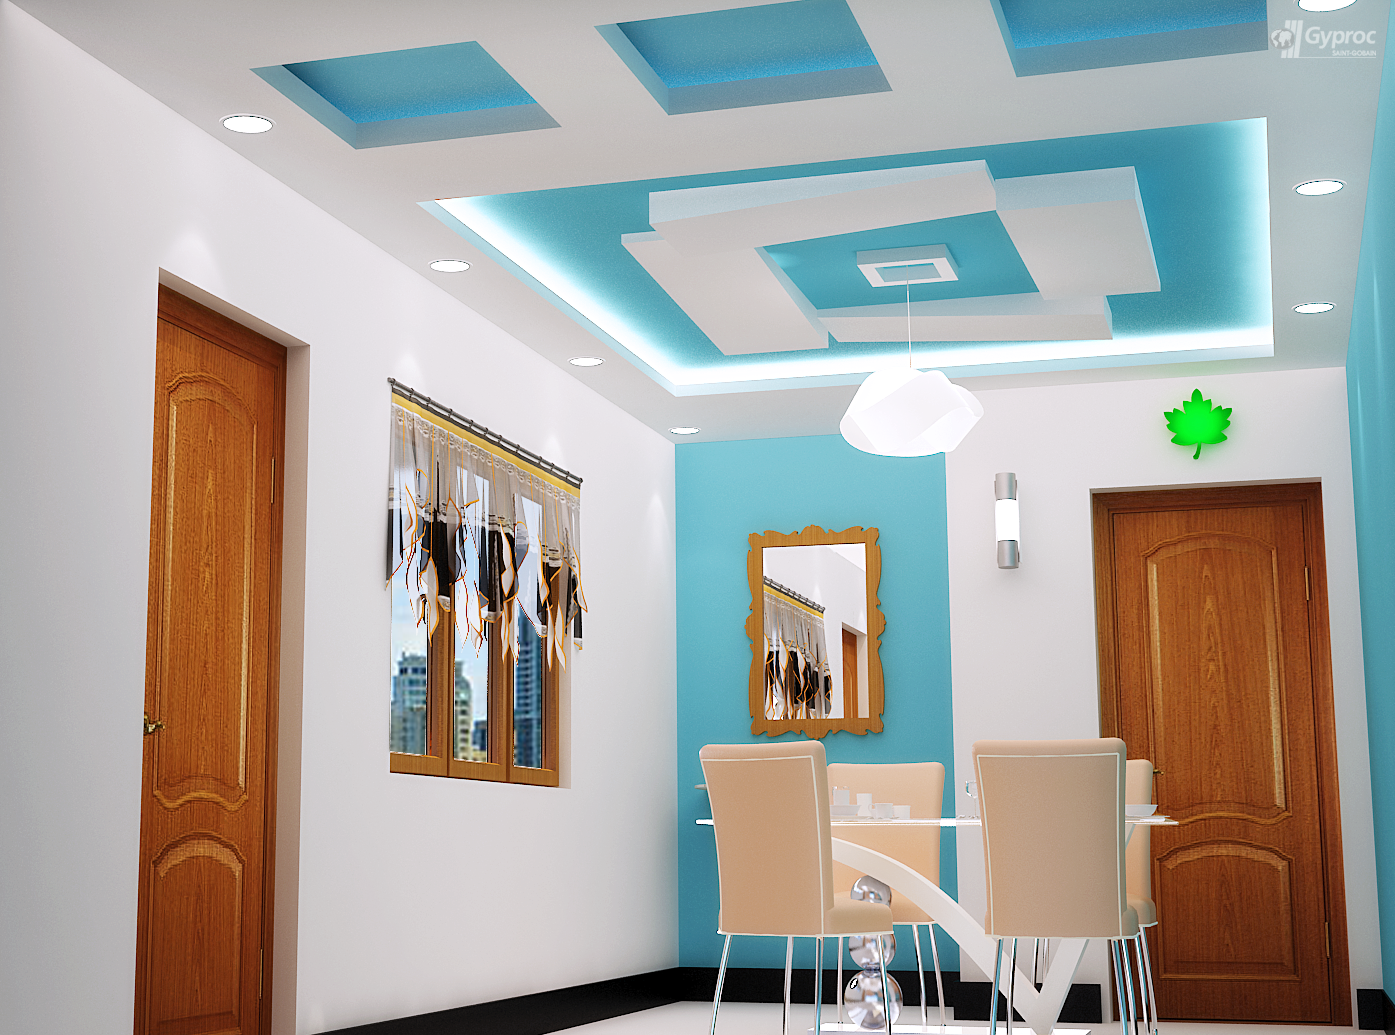 False ceiling designs for other rooms saint gobain for Room design pop